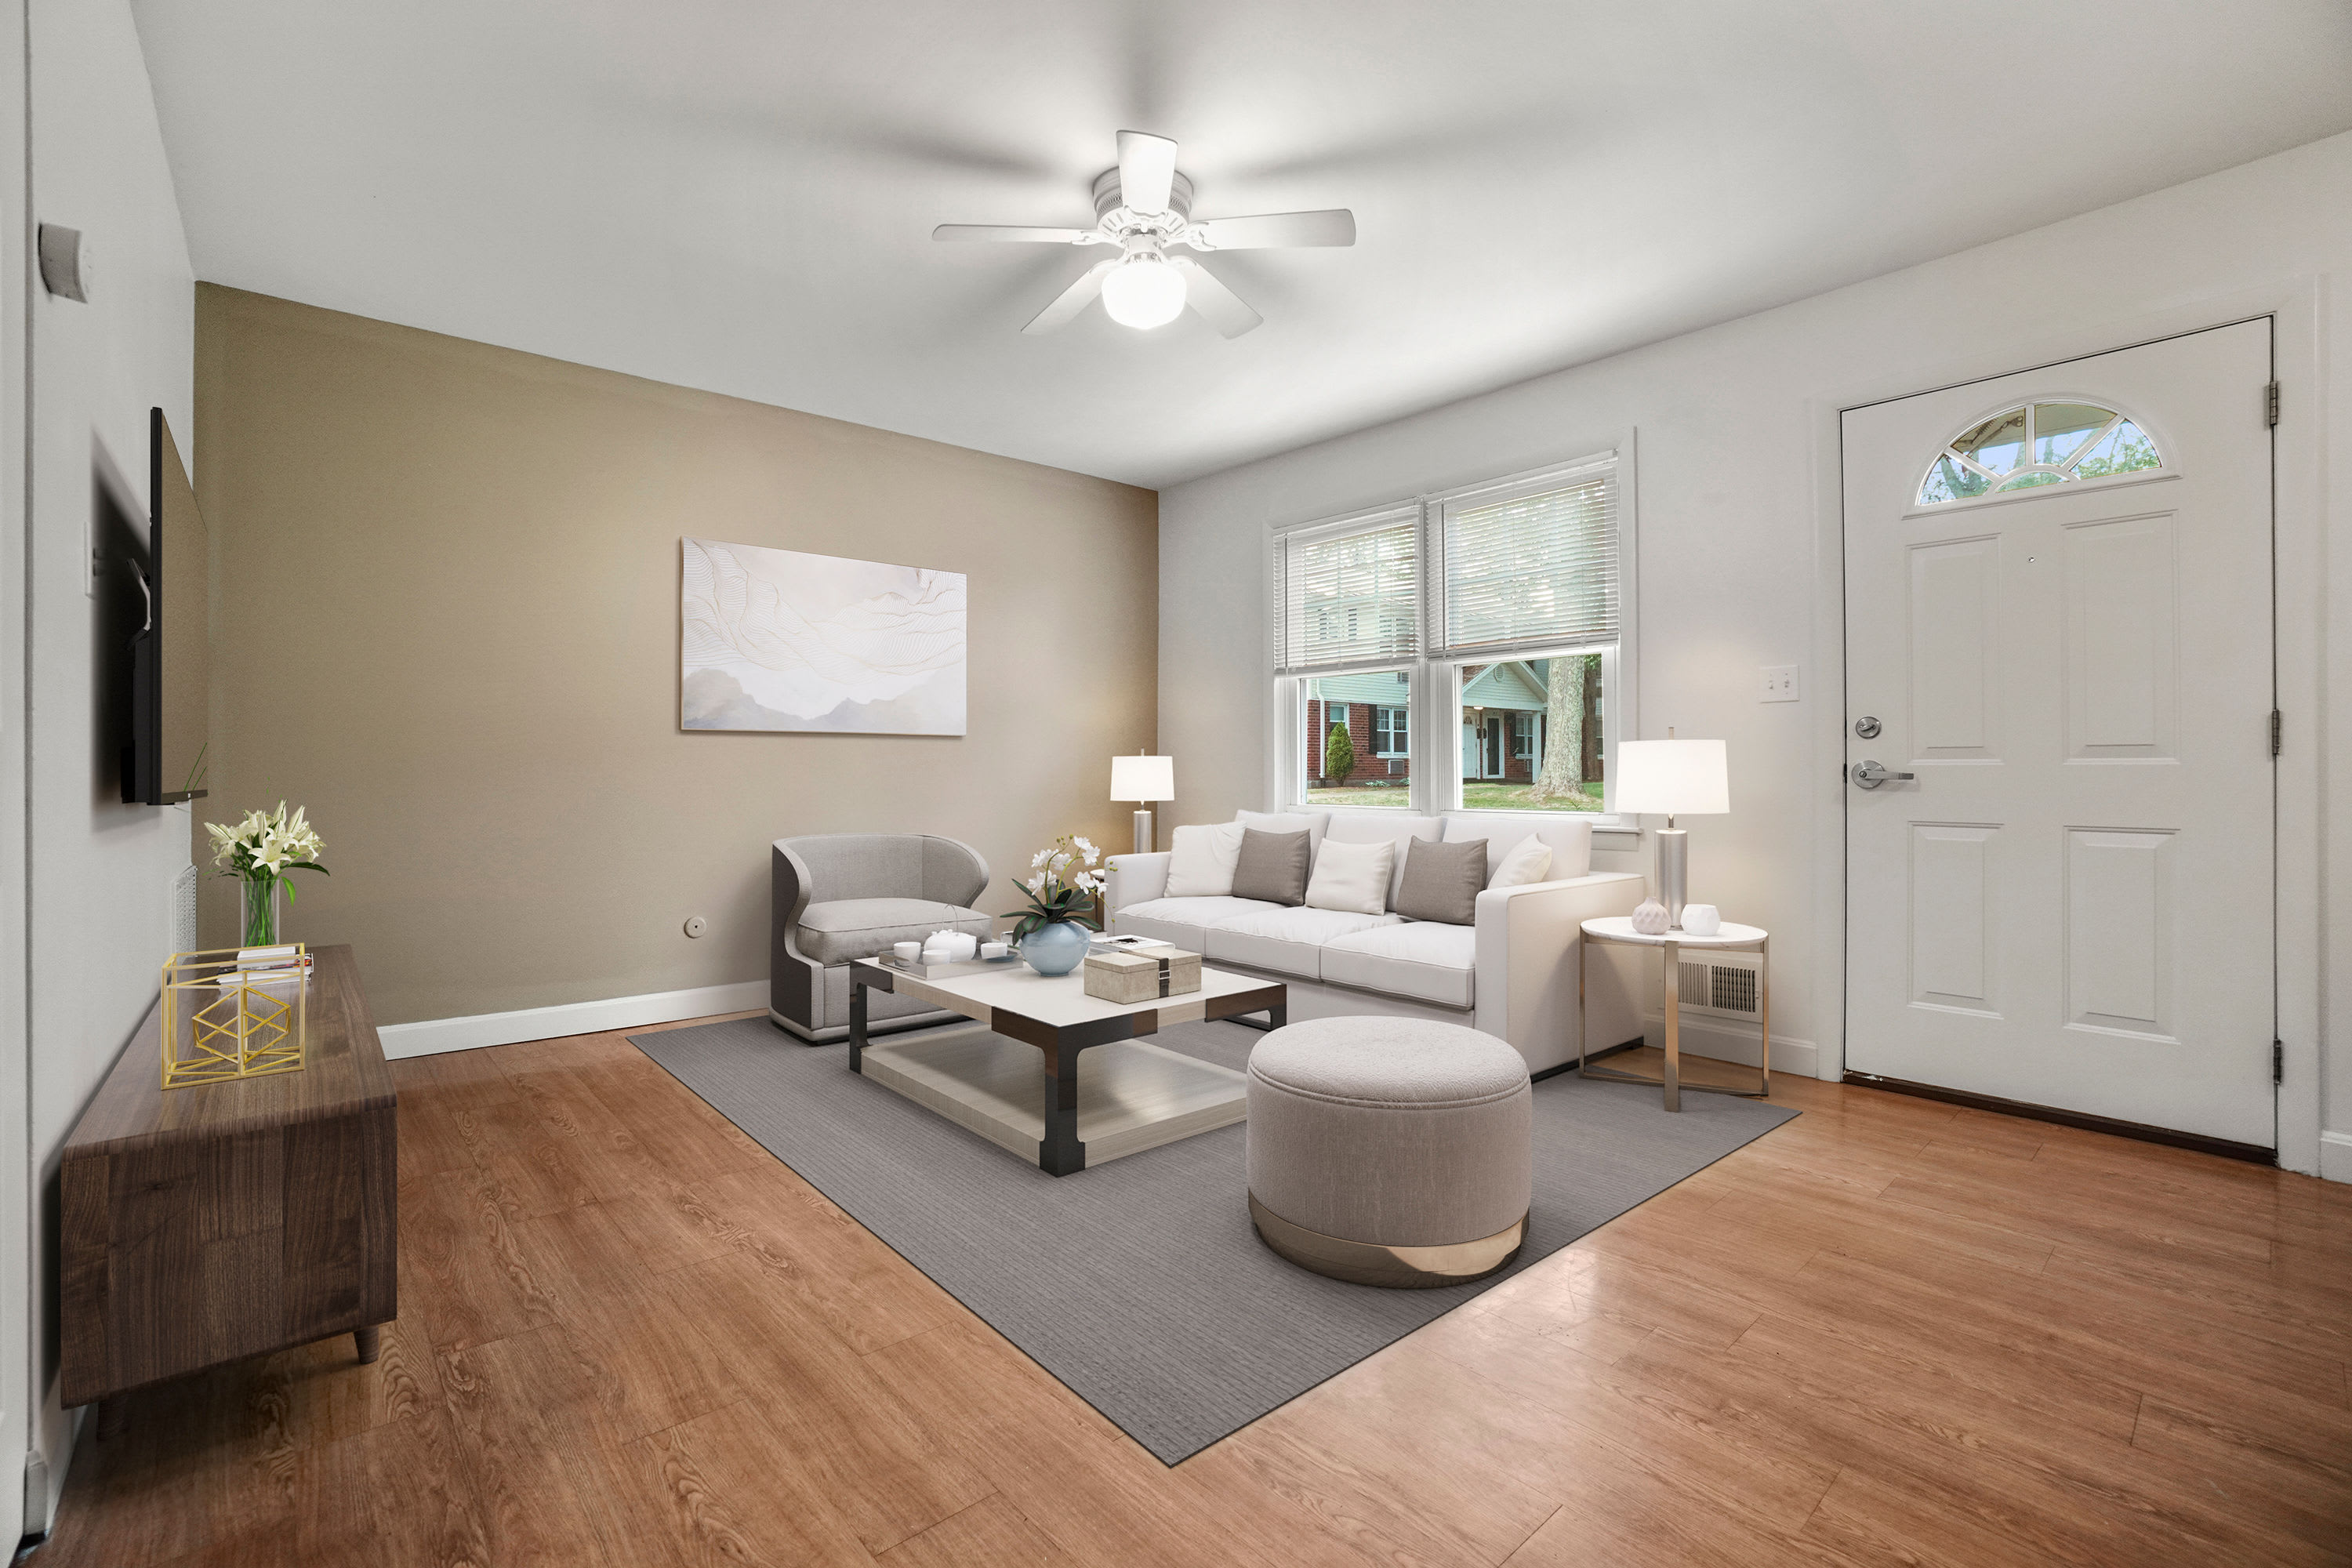 Rendered furnished living room at President Village in Fall River, Massachusetts